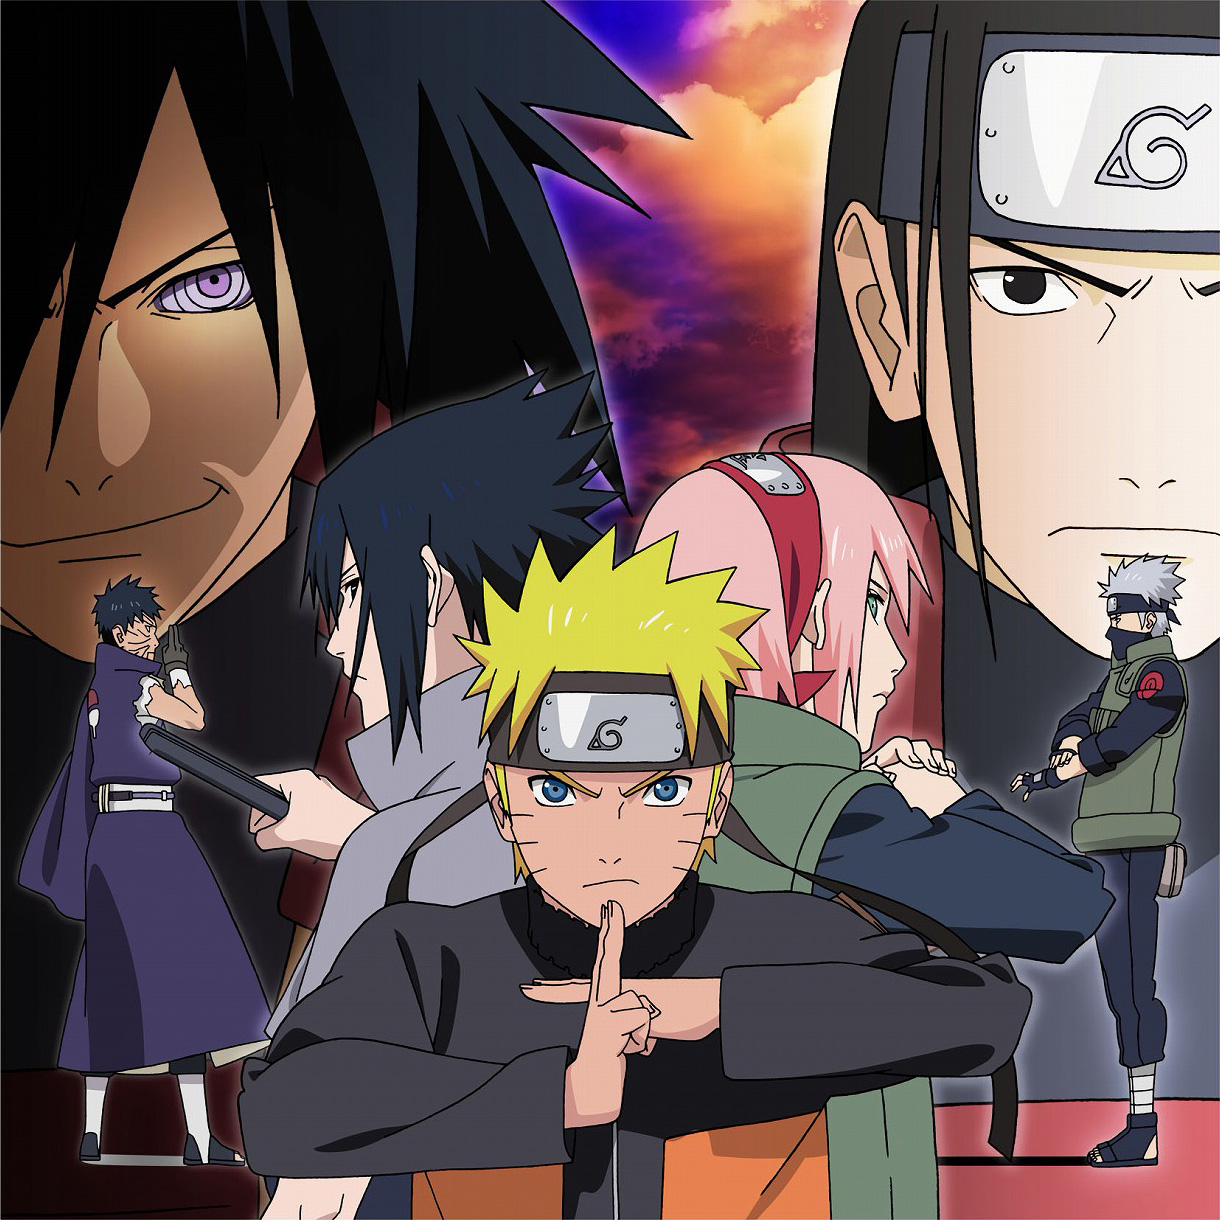 Obito vs Kakashi, Madara vs Hashirama, with Naruto, Sakura, and Sasuke